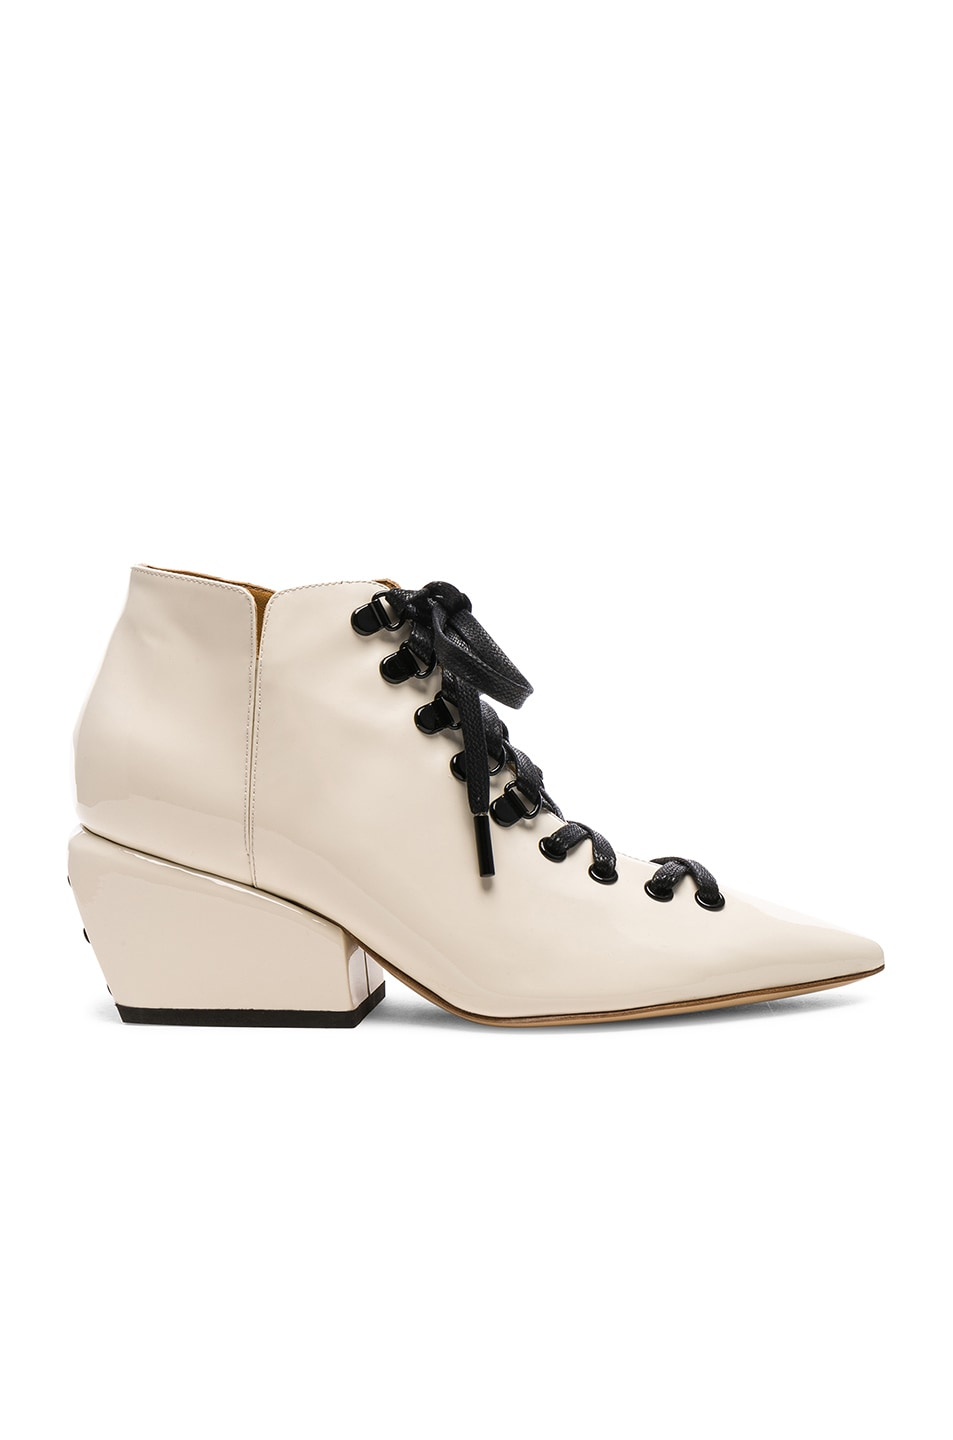 Petar Petrov PETAR PETROV PATENT LEATHER SACHA BOOTS IN WHITE